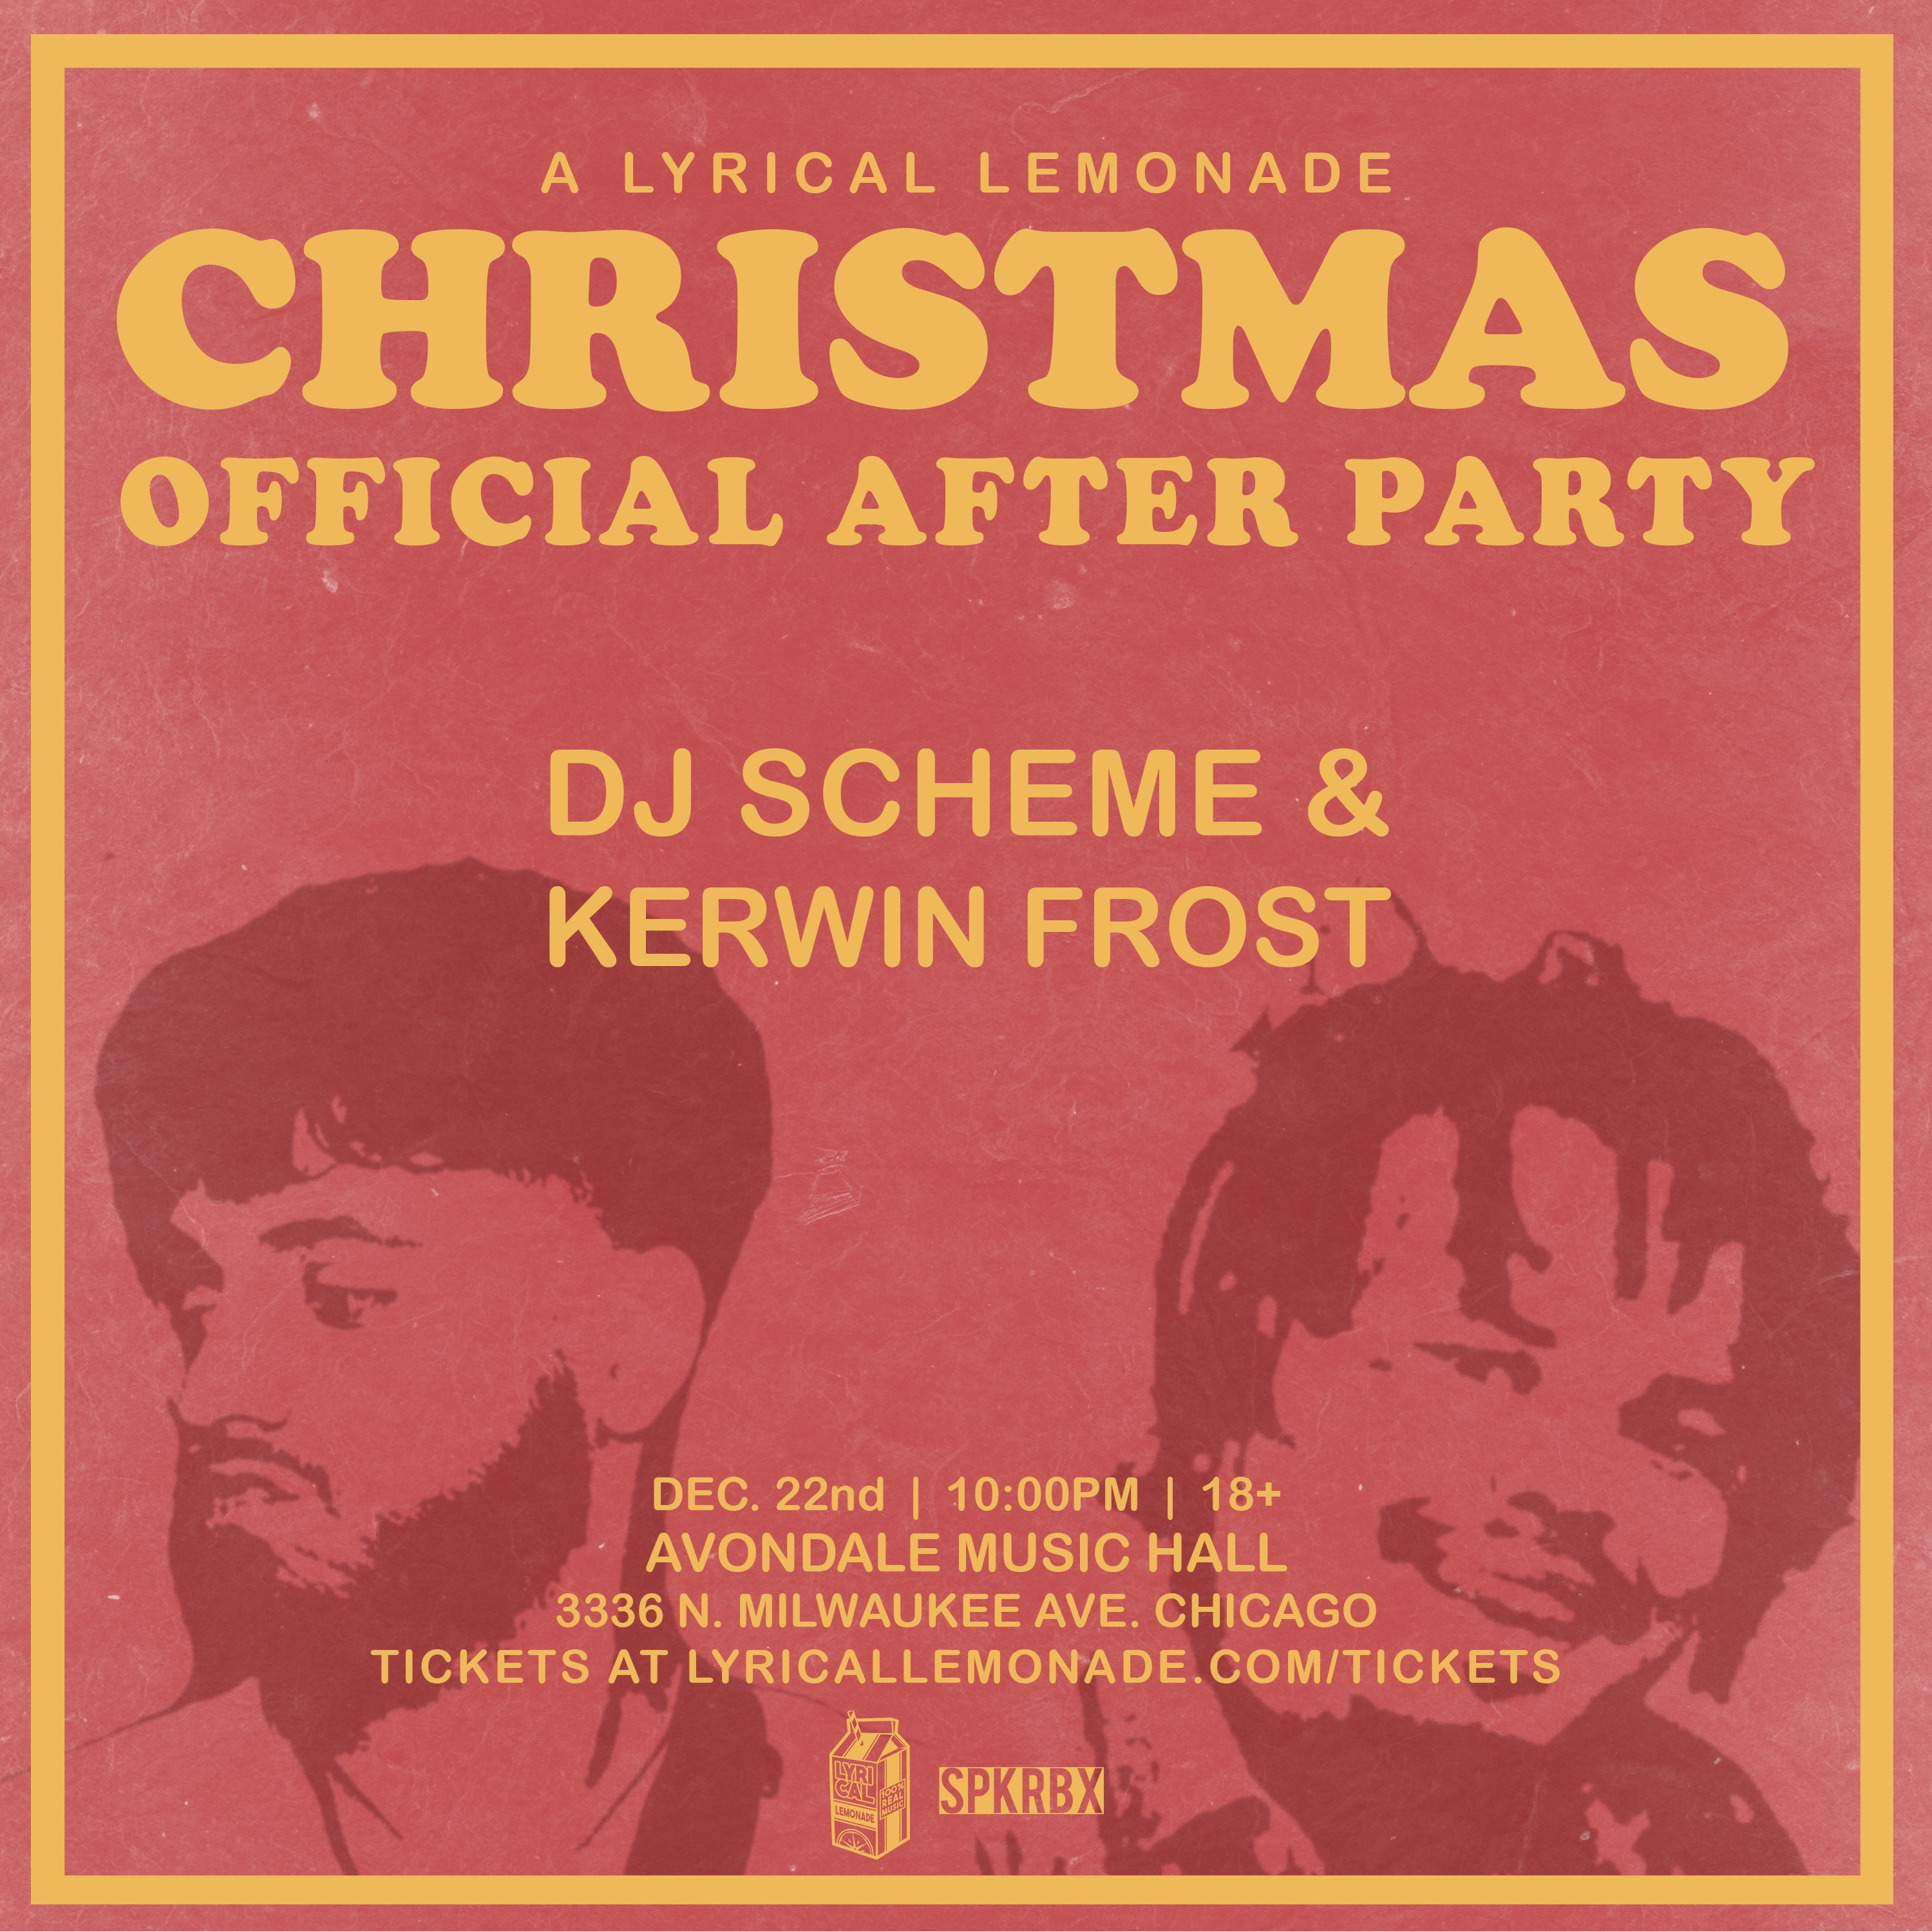 The Lyrical Lemonade Christmas Afterparty